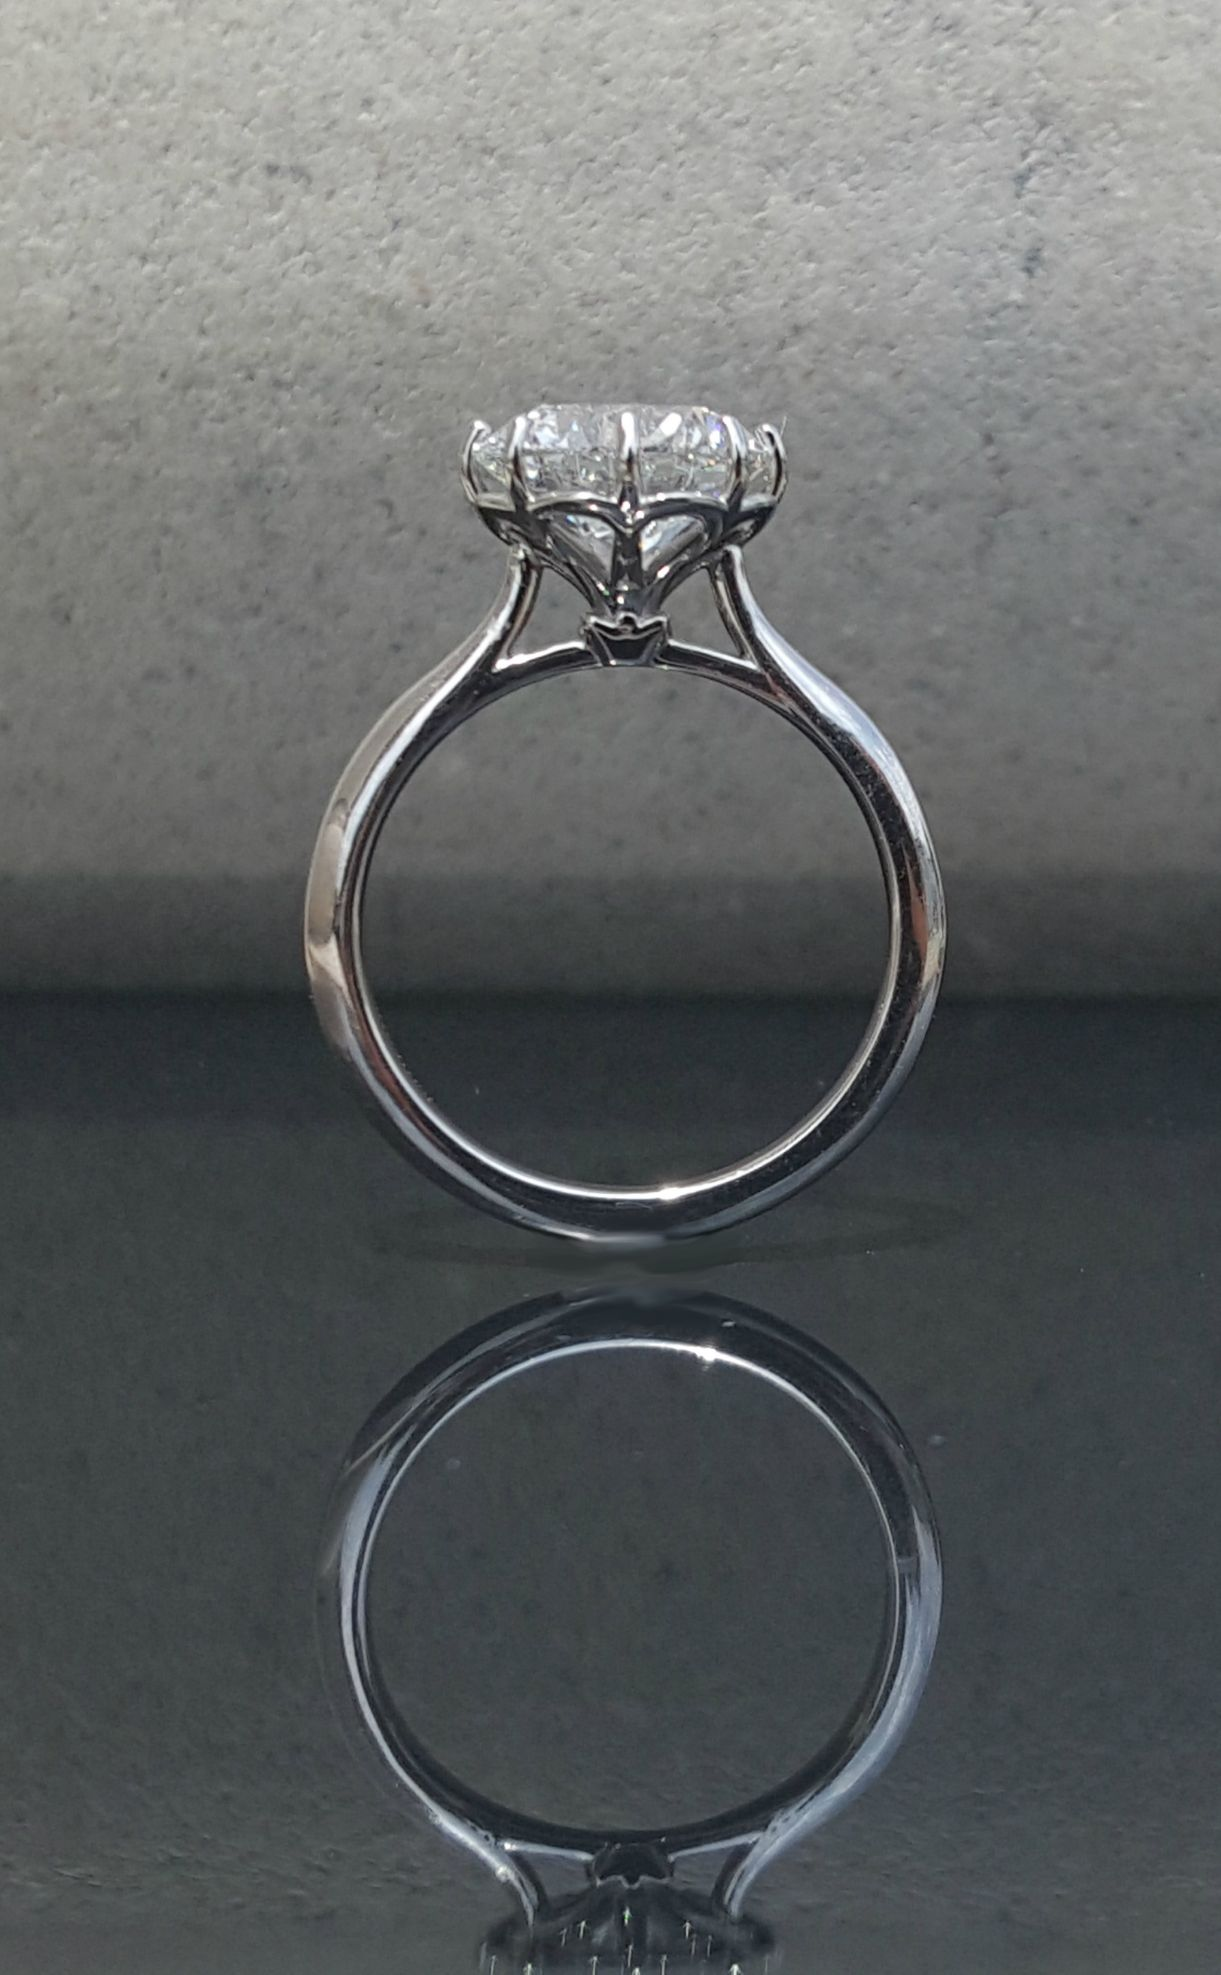 Flower Petal Solitaire 8 Prong Solitaire Round Solitaire White